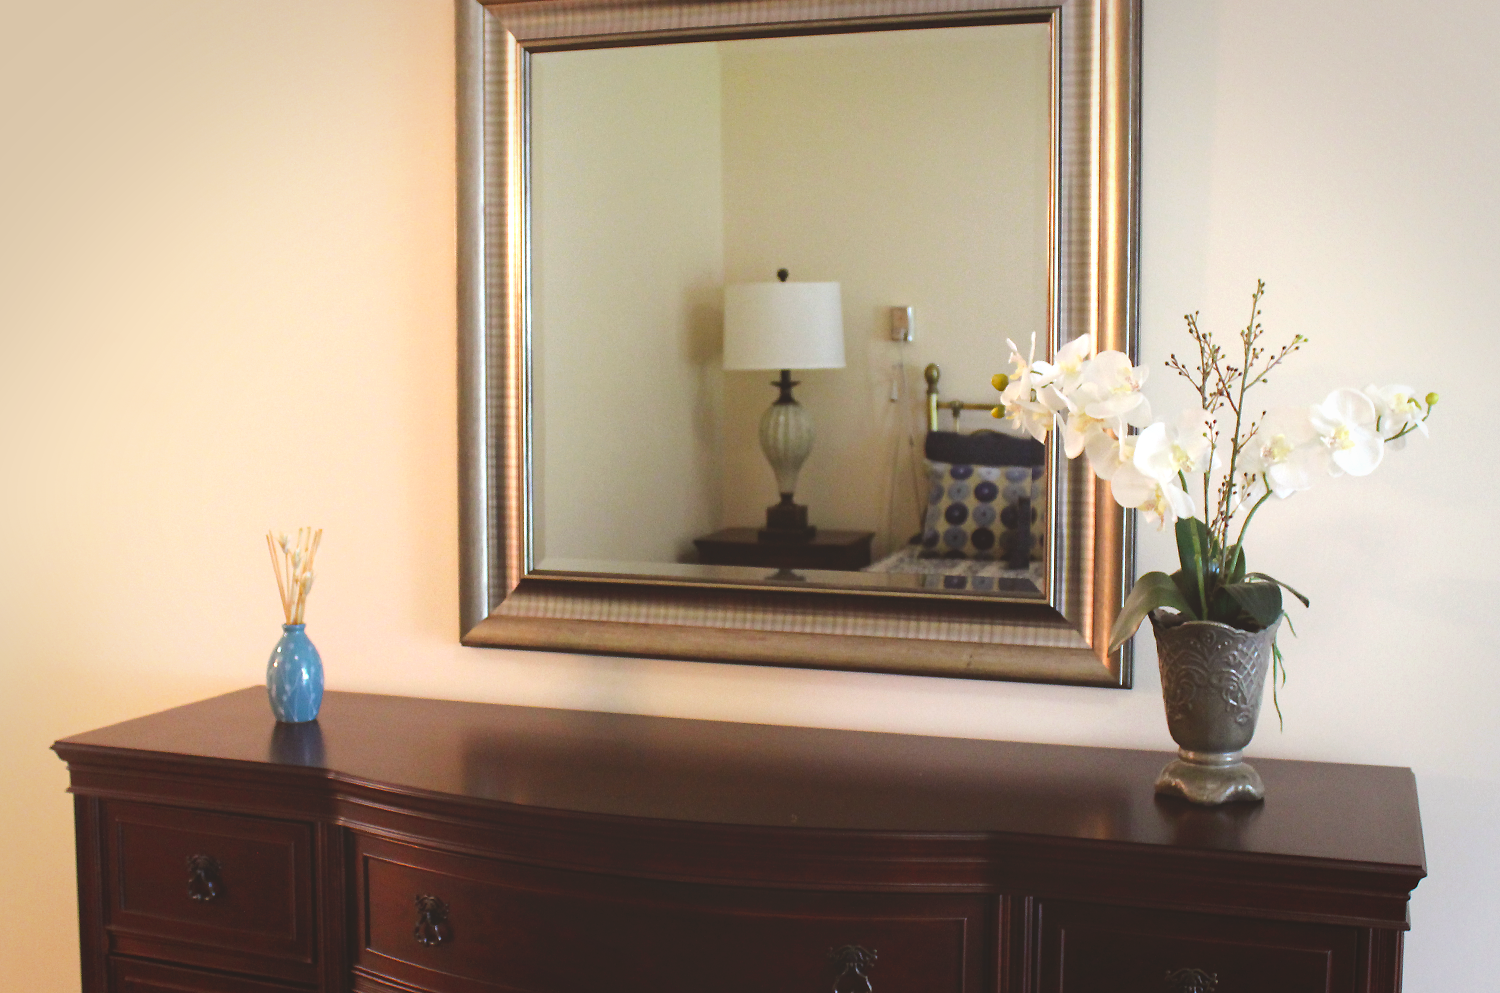 Birchmere Bedroom Mirror. Click to view larger image.